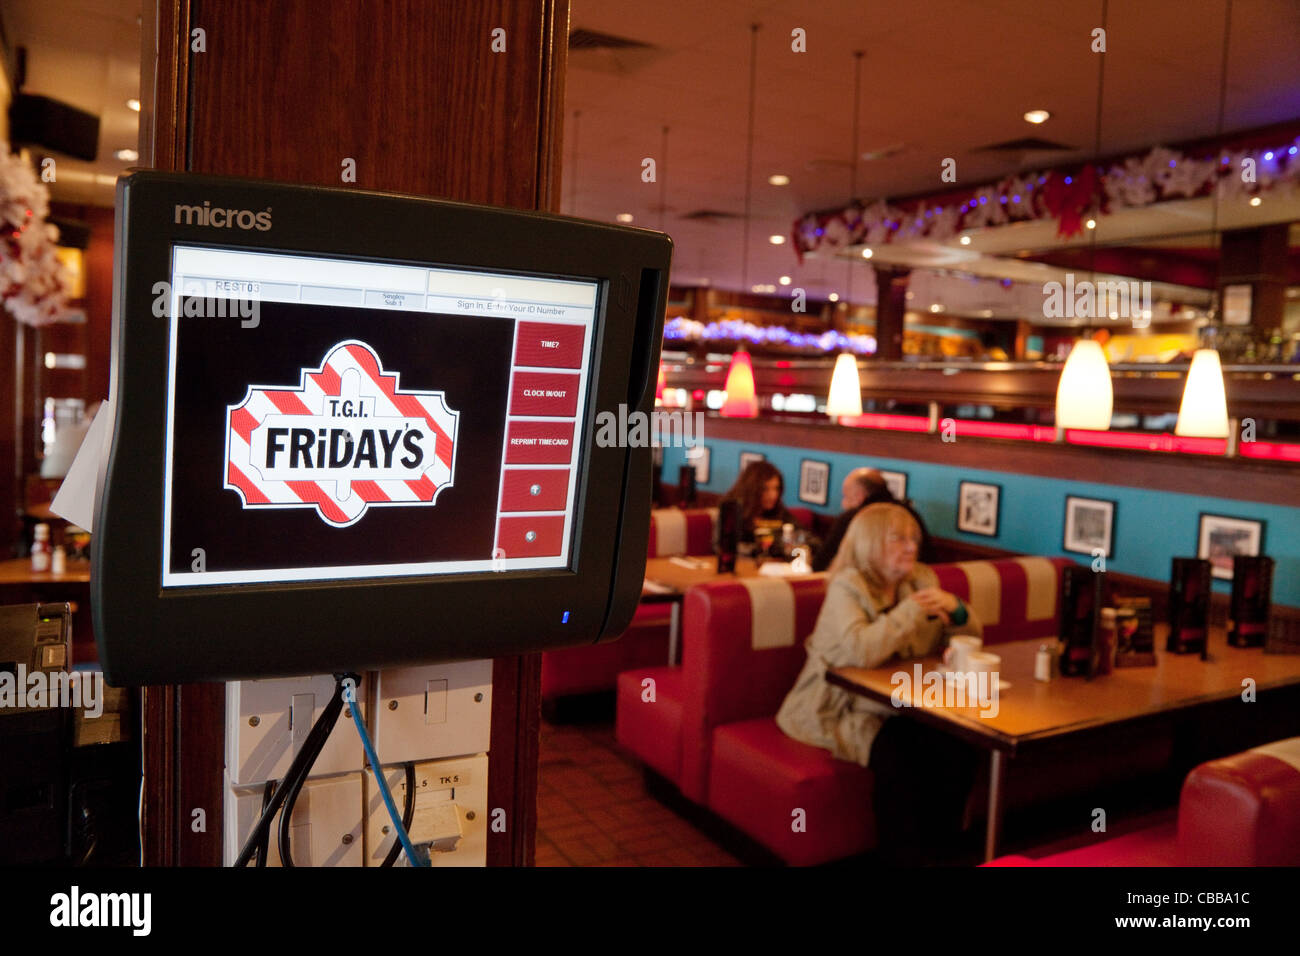 secret shopper tgifridays 79 reviews of tgi fridays i normally try to refrain from reviewing chain restaurants on a regular basis,  fridays should invest in a secret shopper.